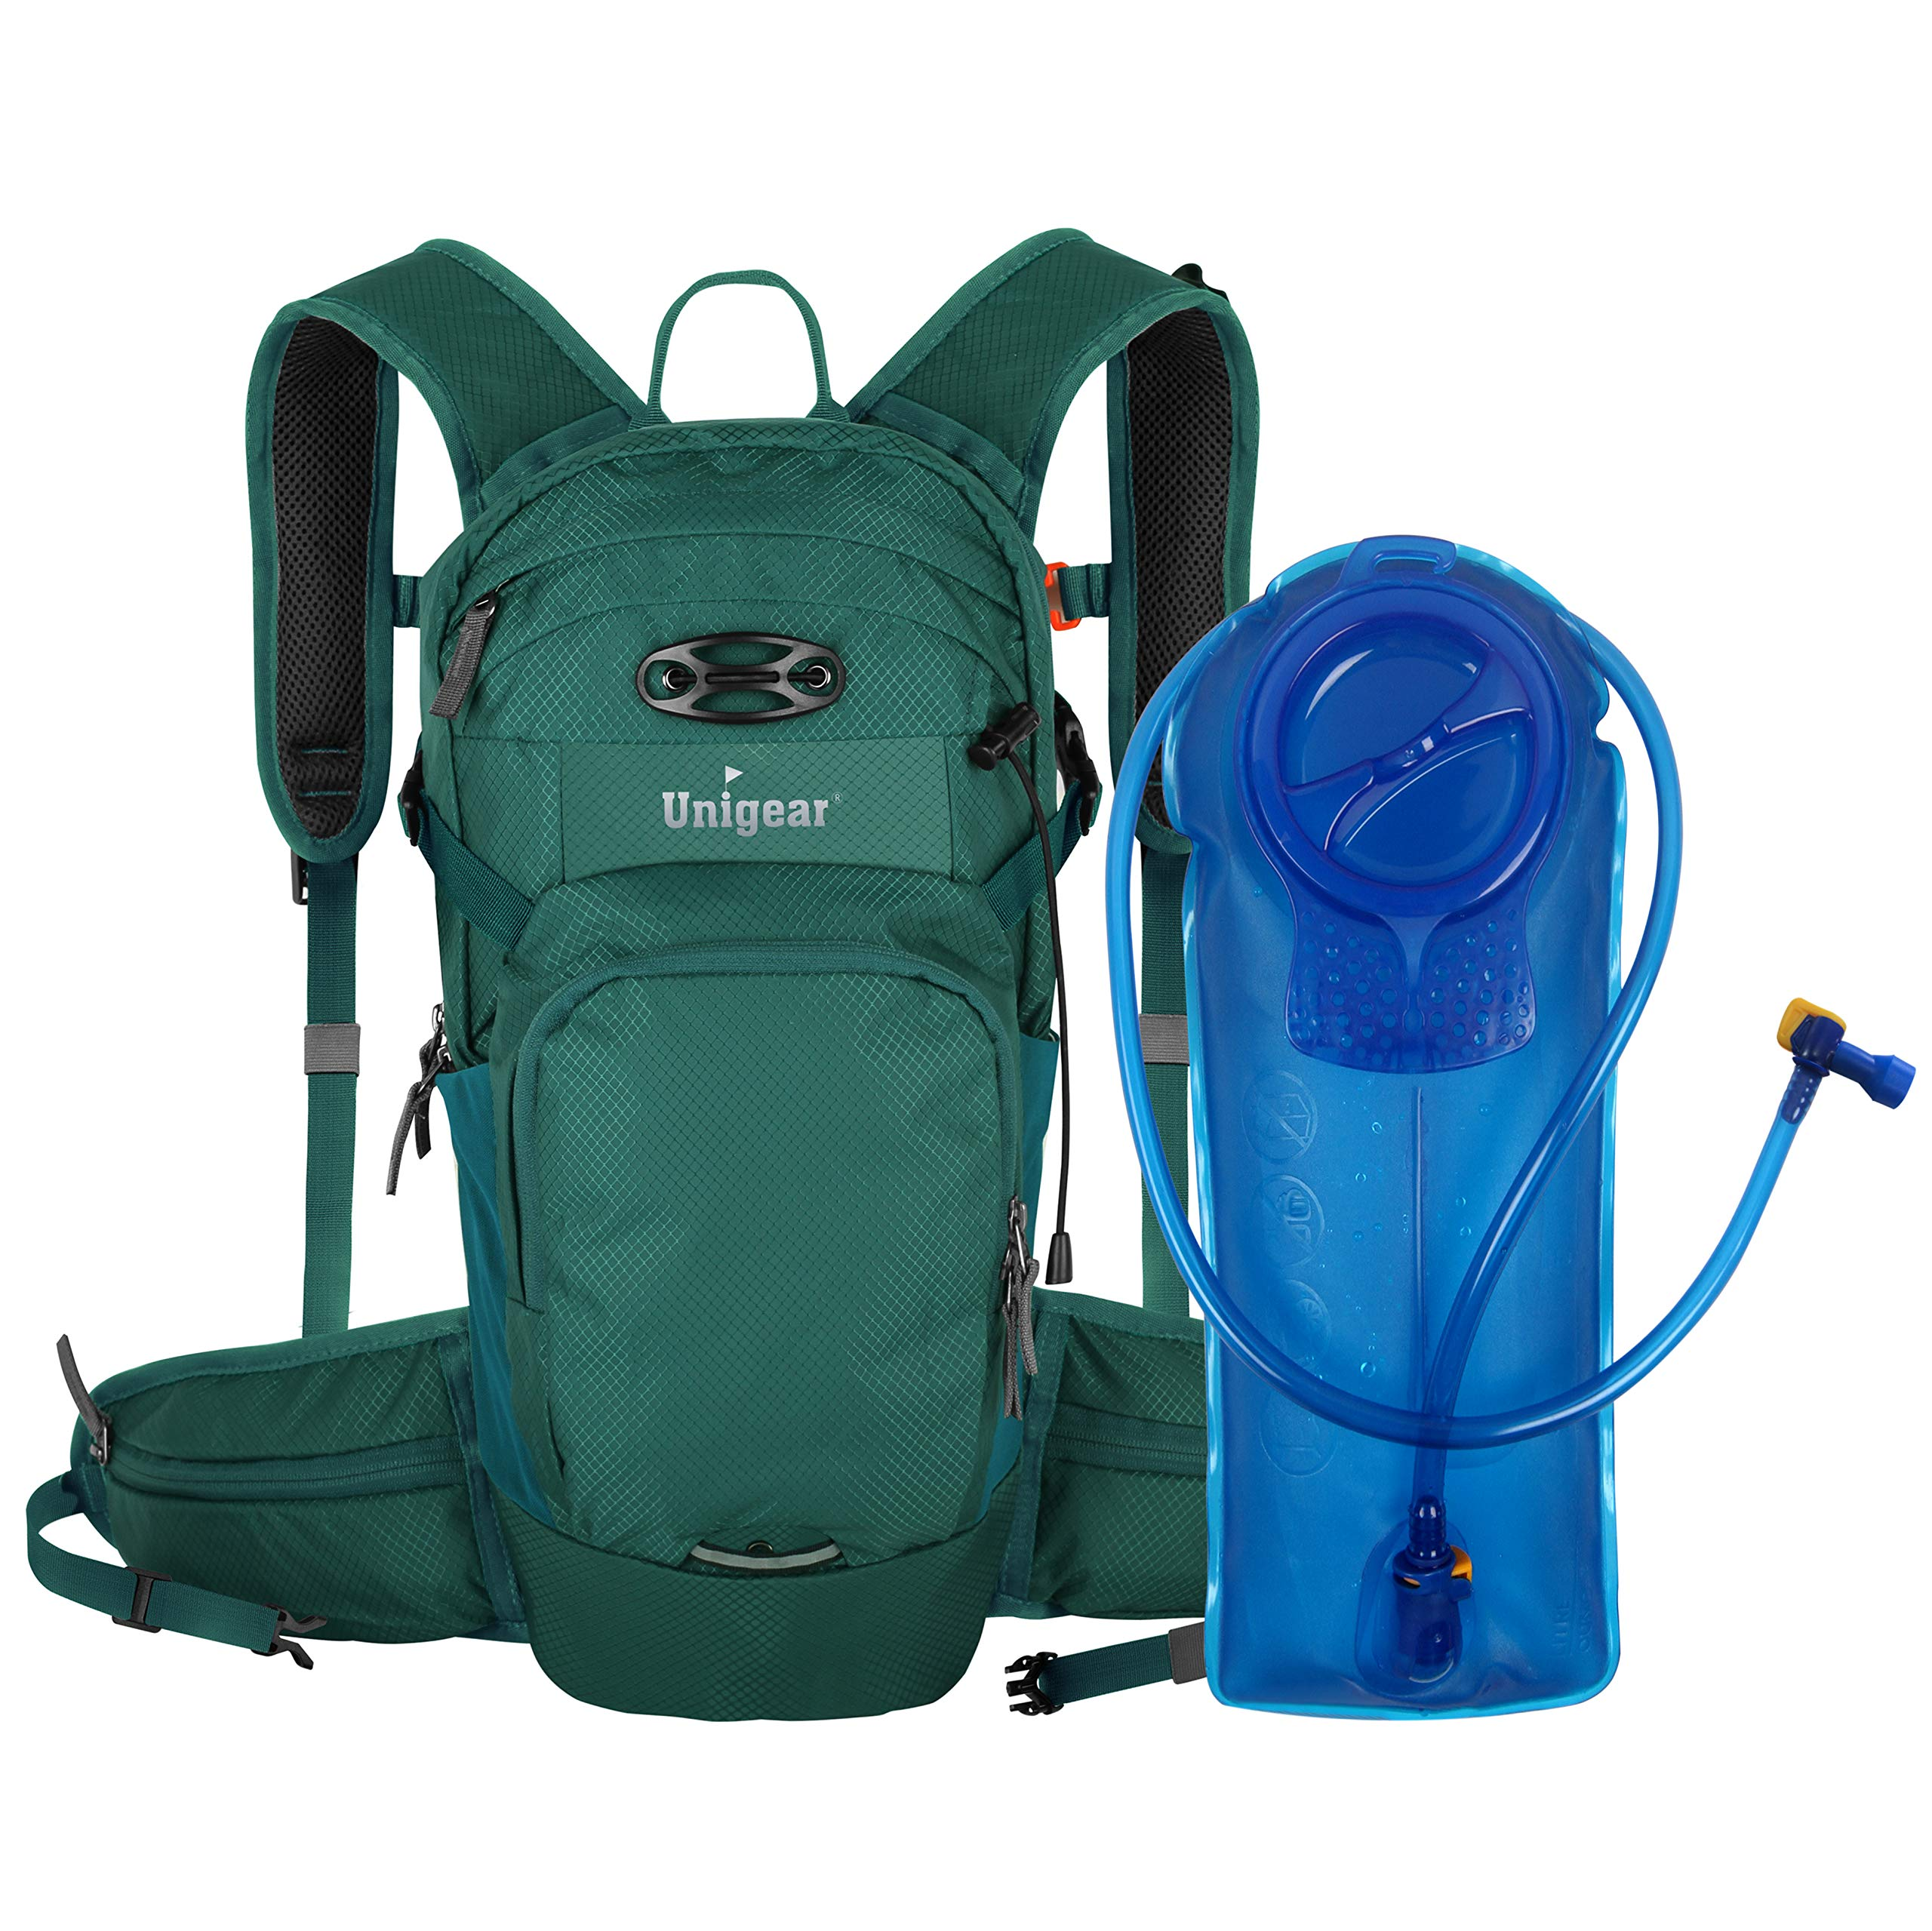 Unigear Hydration Packs Backpack with 2L TPU Water Bladder Reservoir, Thermal Insulation Pack Keeps Liquid Cool up to 4 Hours for Running, Hiking, Climbing, Cycling (Peacock Blue)